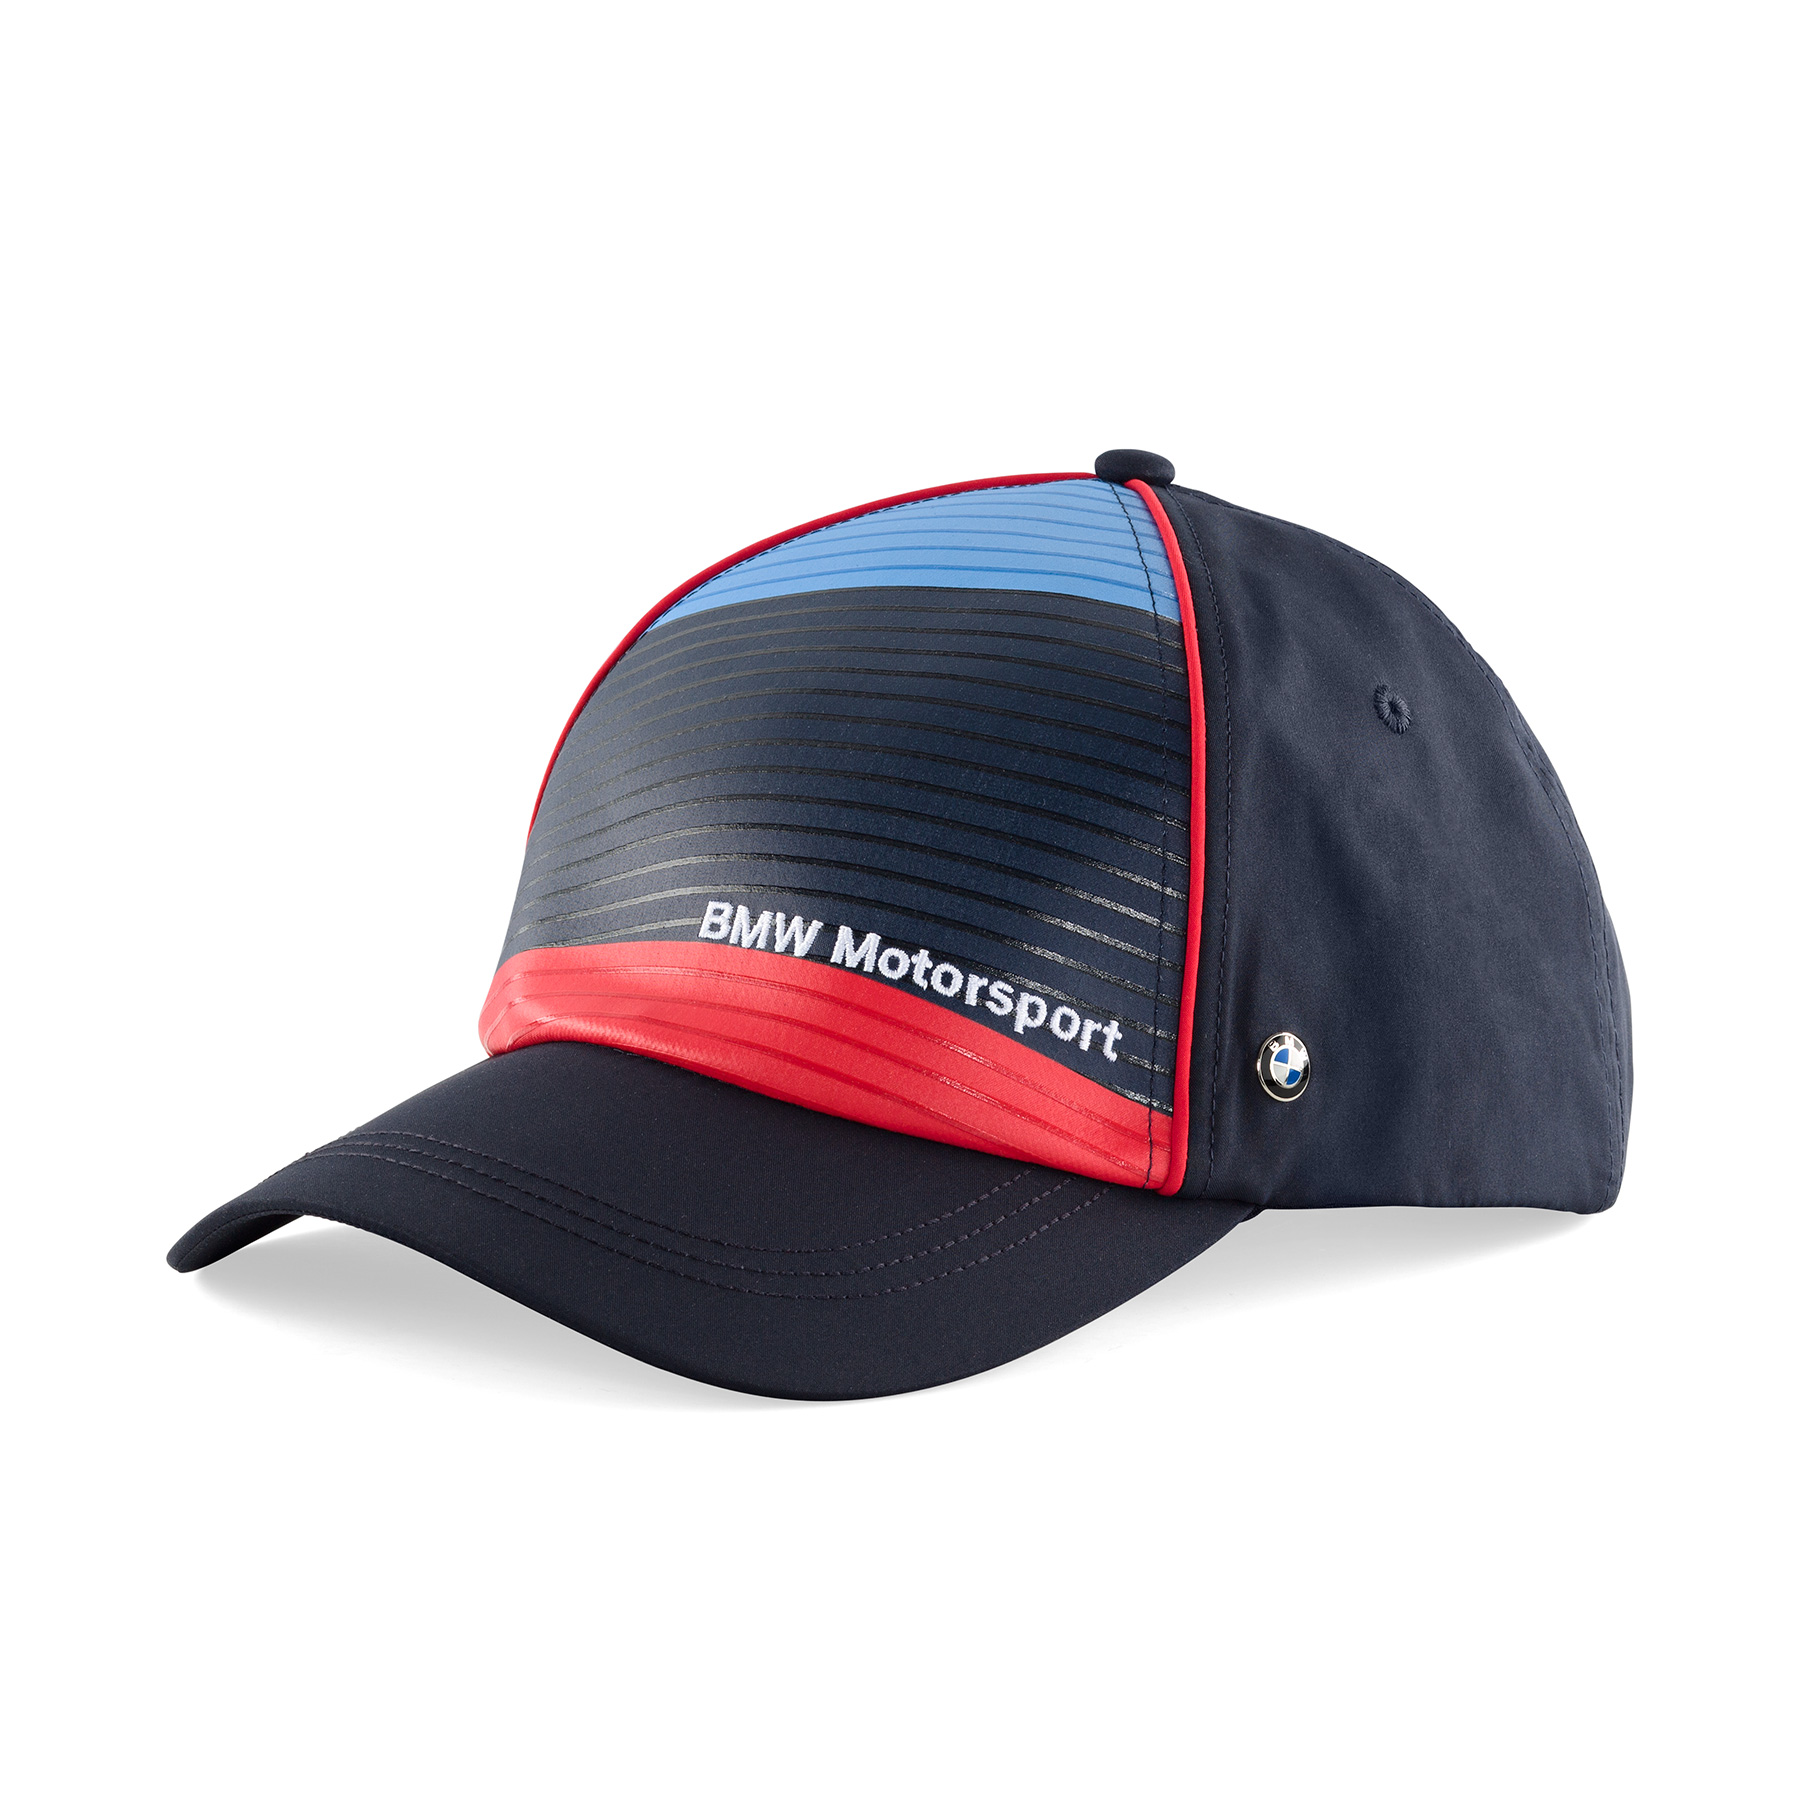 new puma bmw motorsport mens cap blue with m sport logo. Black Bedroom Furniture Sets. Home Design Ideas